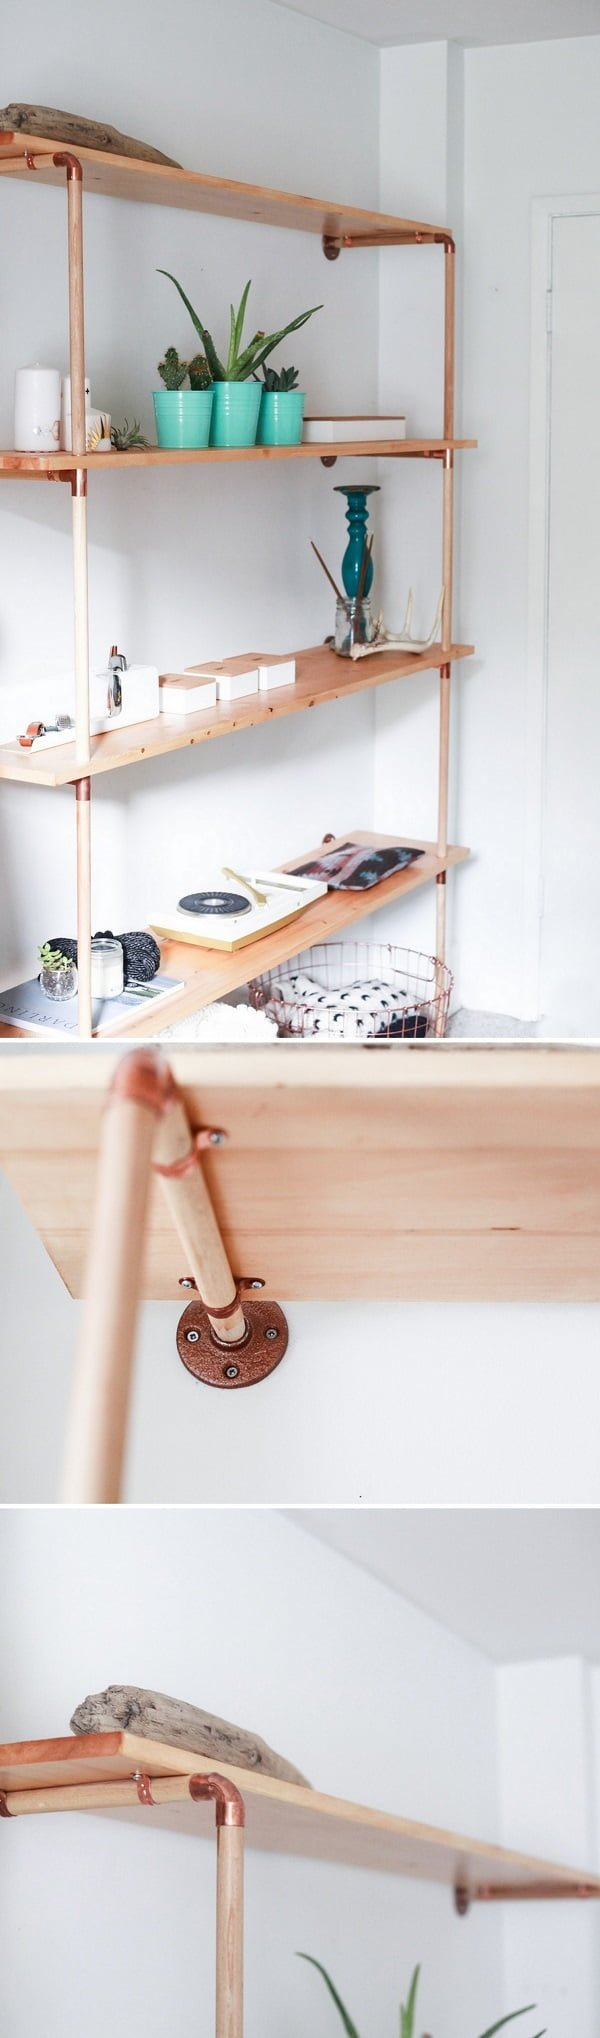 16 Trendy DIY Ideas to Decorate with Copper - Love the idea for #rustic #DIY copper and wood shelves #woodworking #homedecor